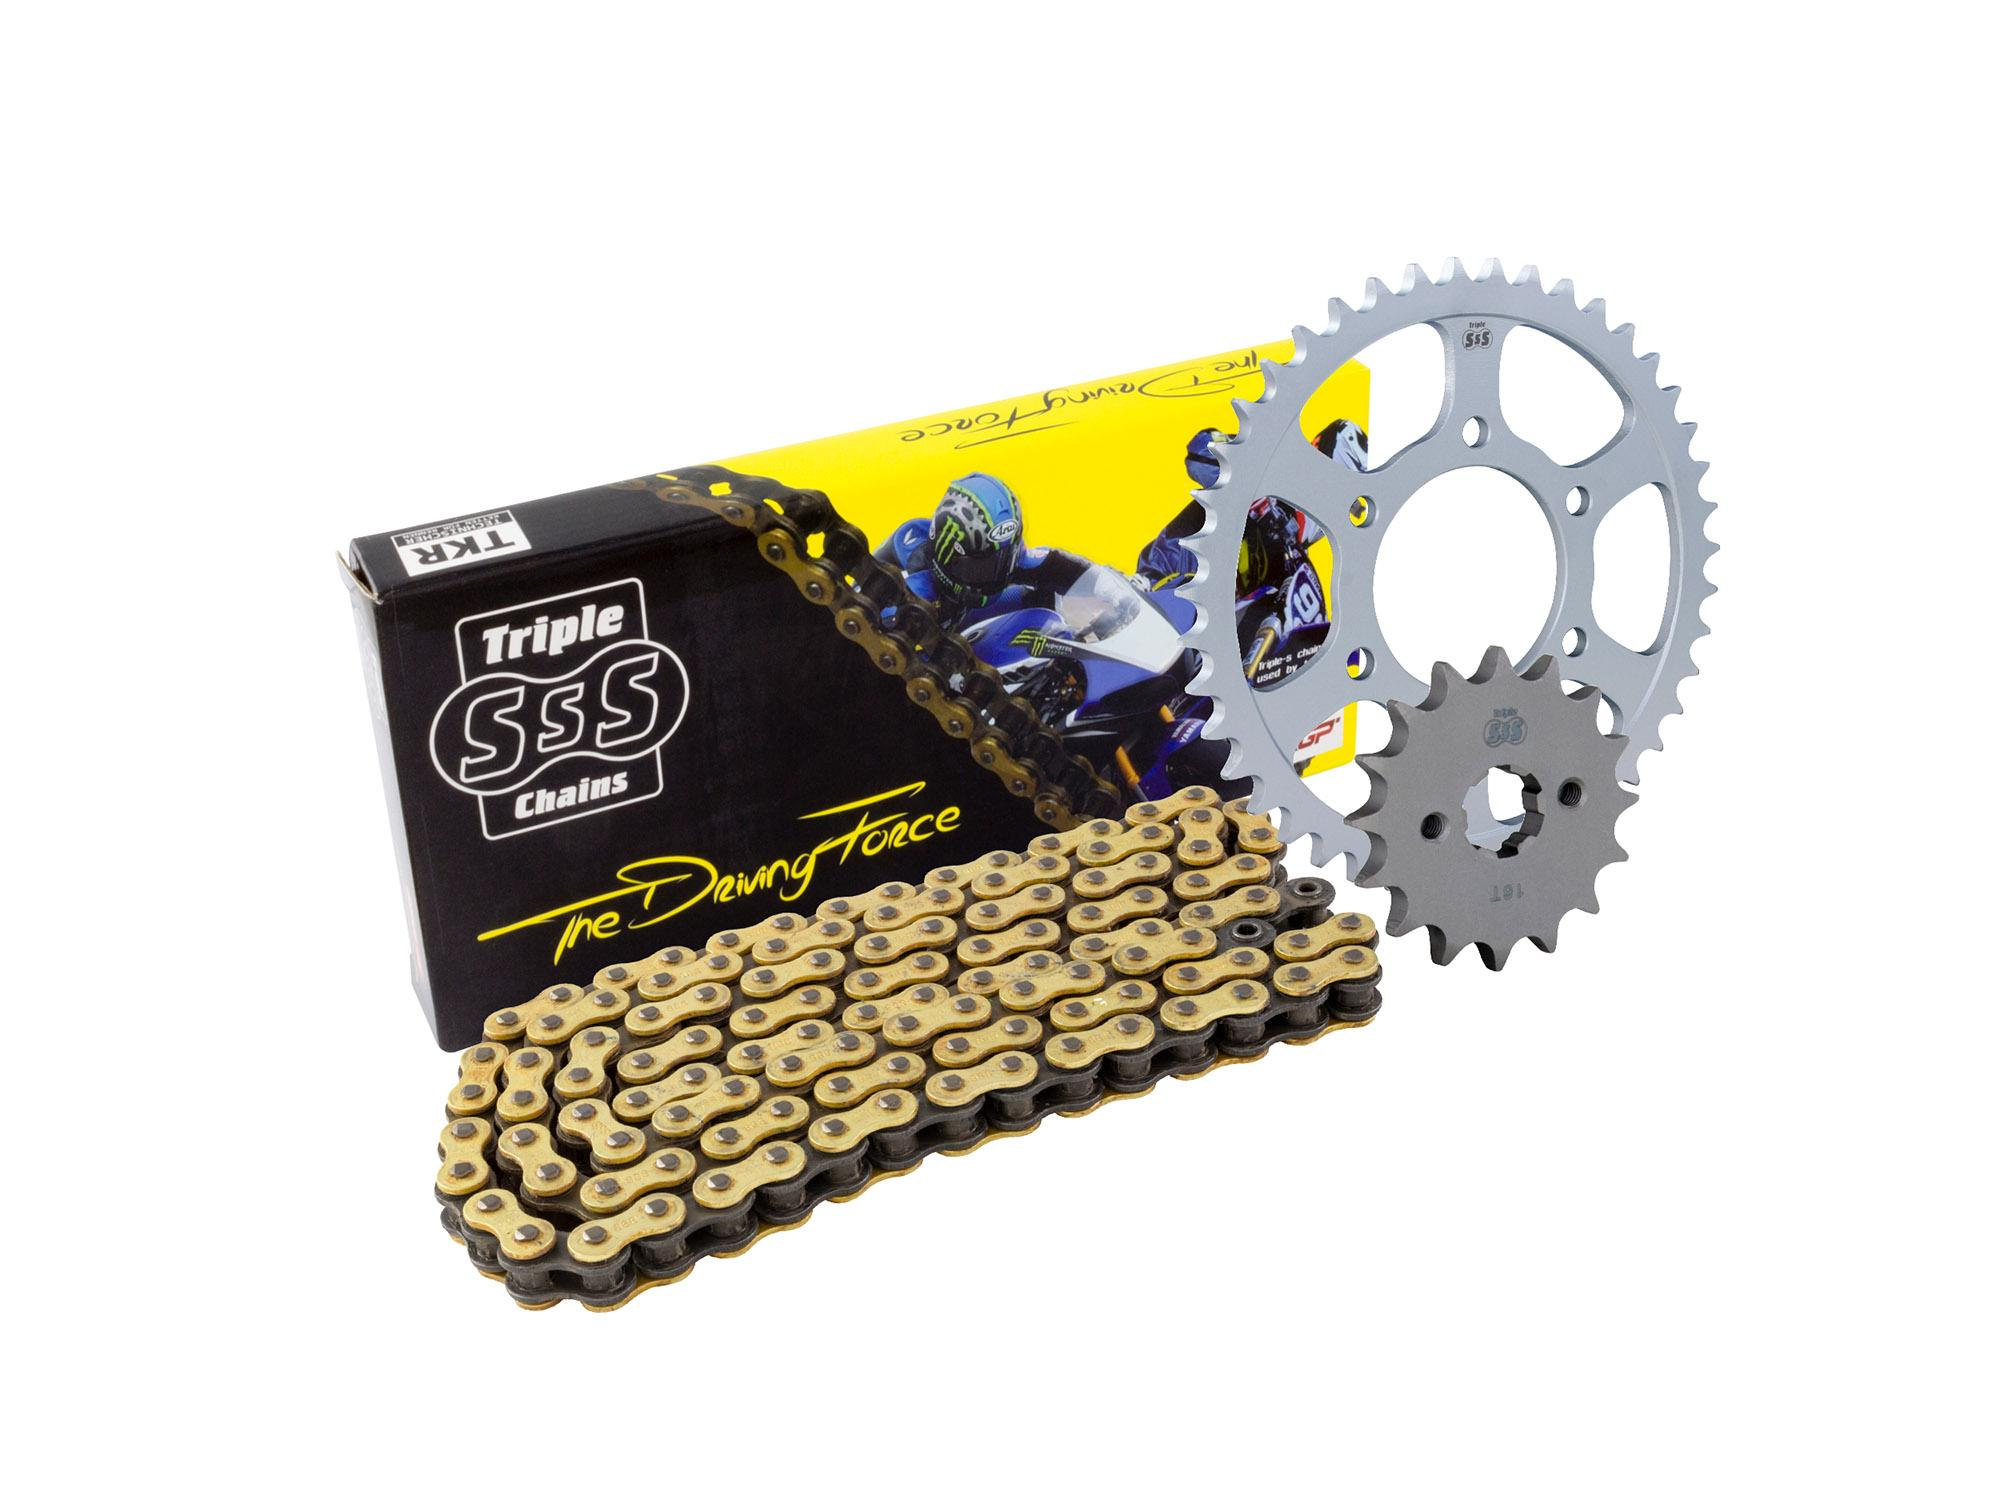 Suzuki GSX-R600 Y 00 Chain & Sprocket Kit: 16T Front, 46T Rear, HD O-Ring Gold Chain 525H 108 Link